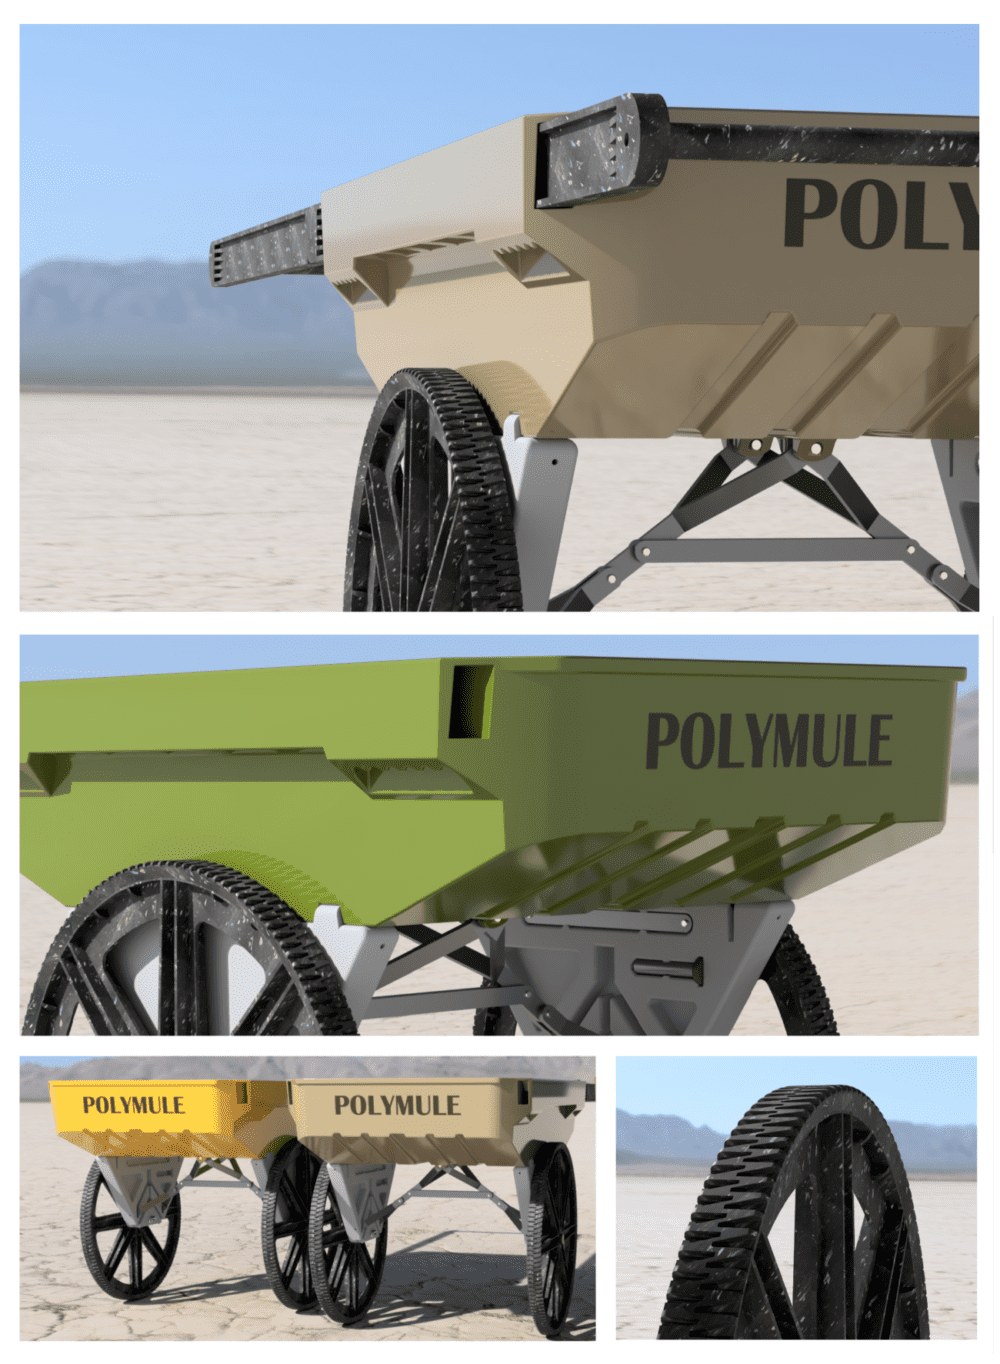 POLYMULE-e1523736342547.png